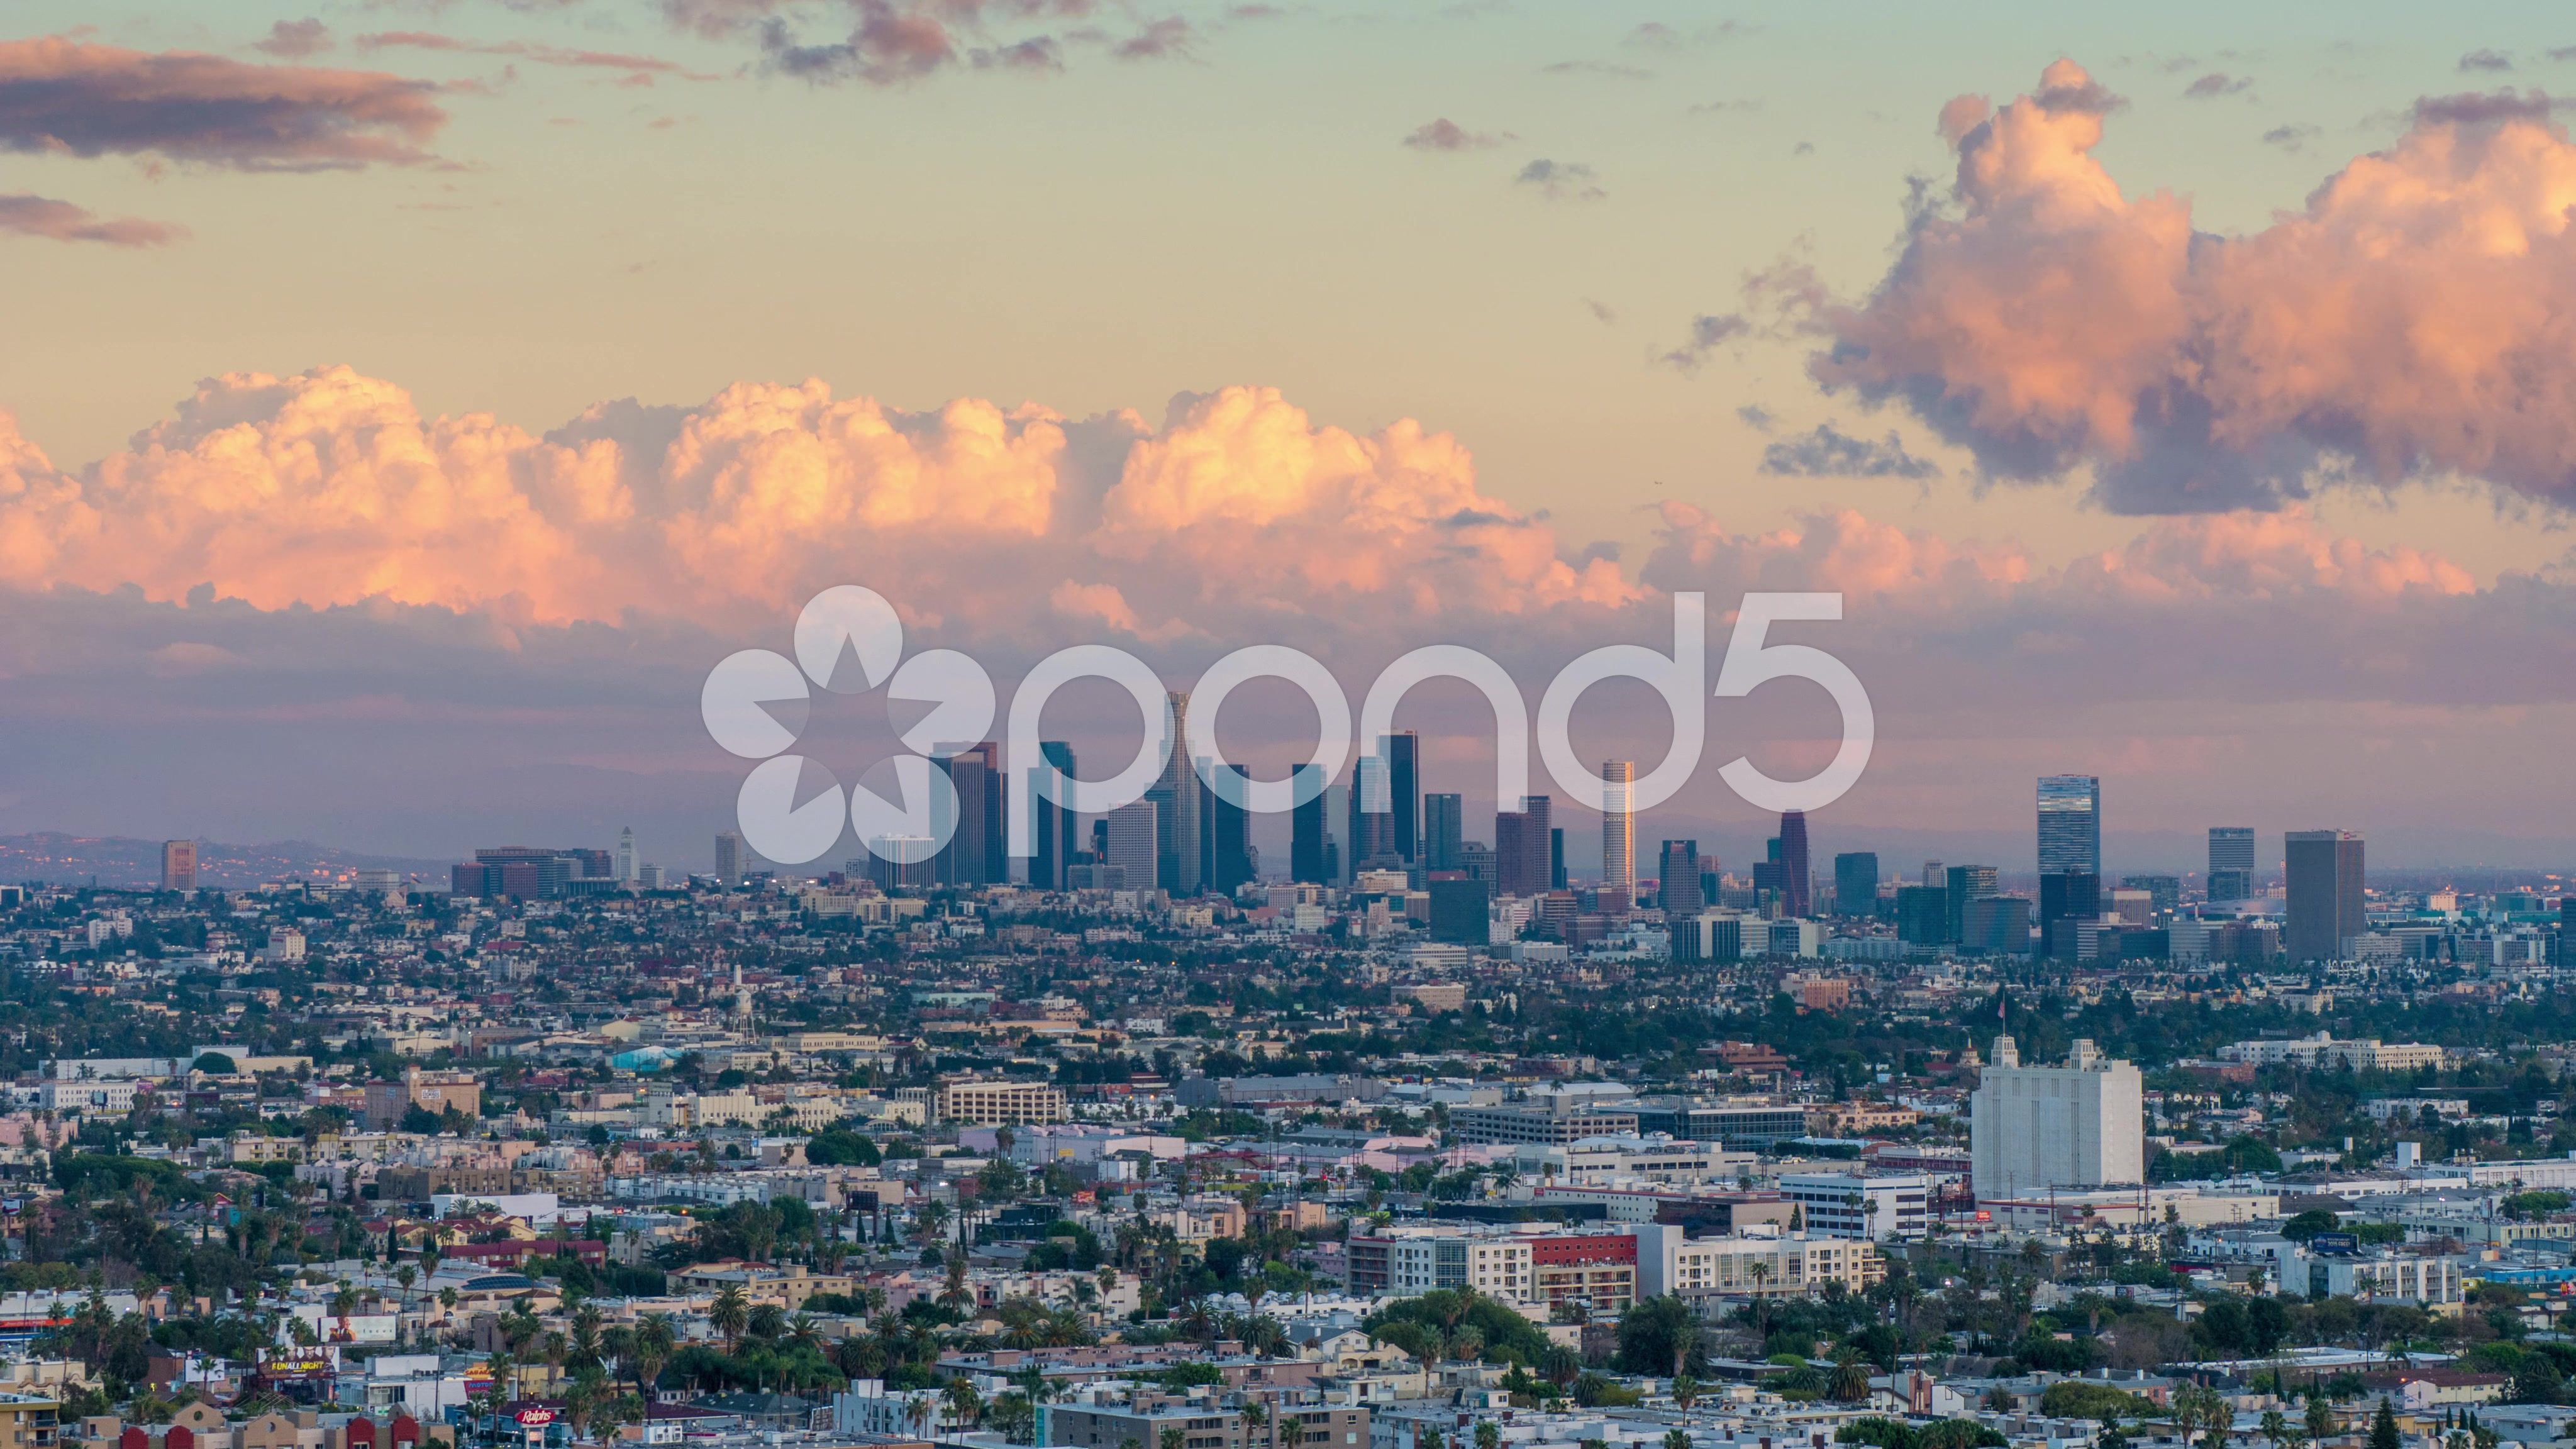 City Of Los Angeles Skyline Changing From Day To Night 4k Uhd Timelapse Stock Footage Skyline Changing Angeles City Los Angeles Skyline Skyline City